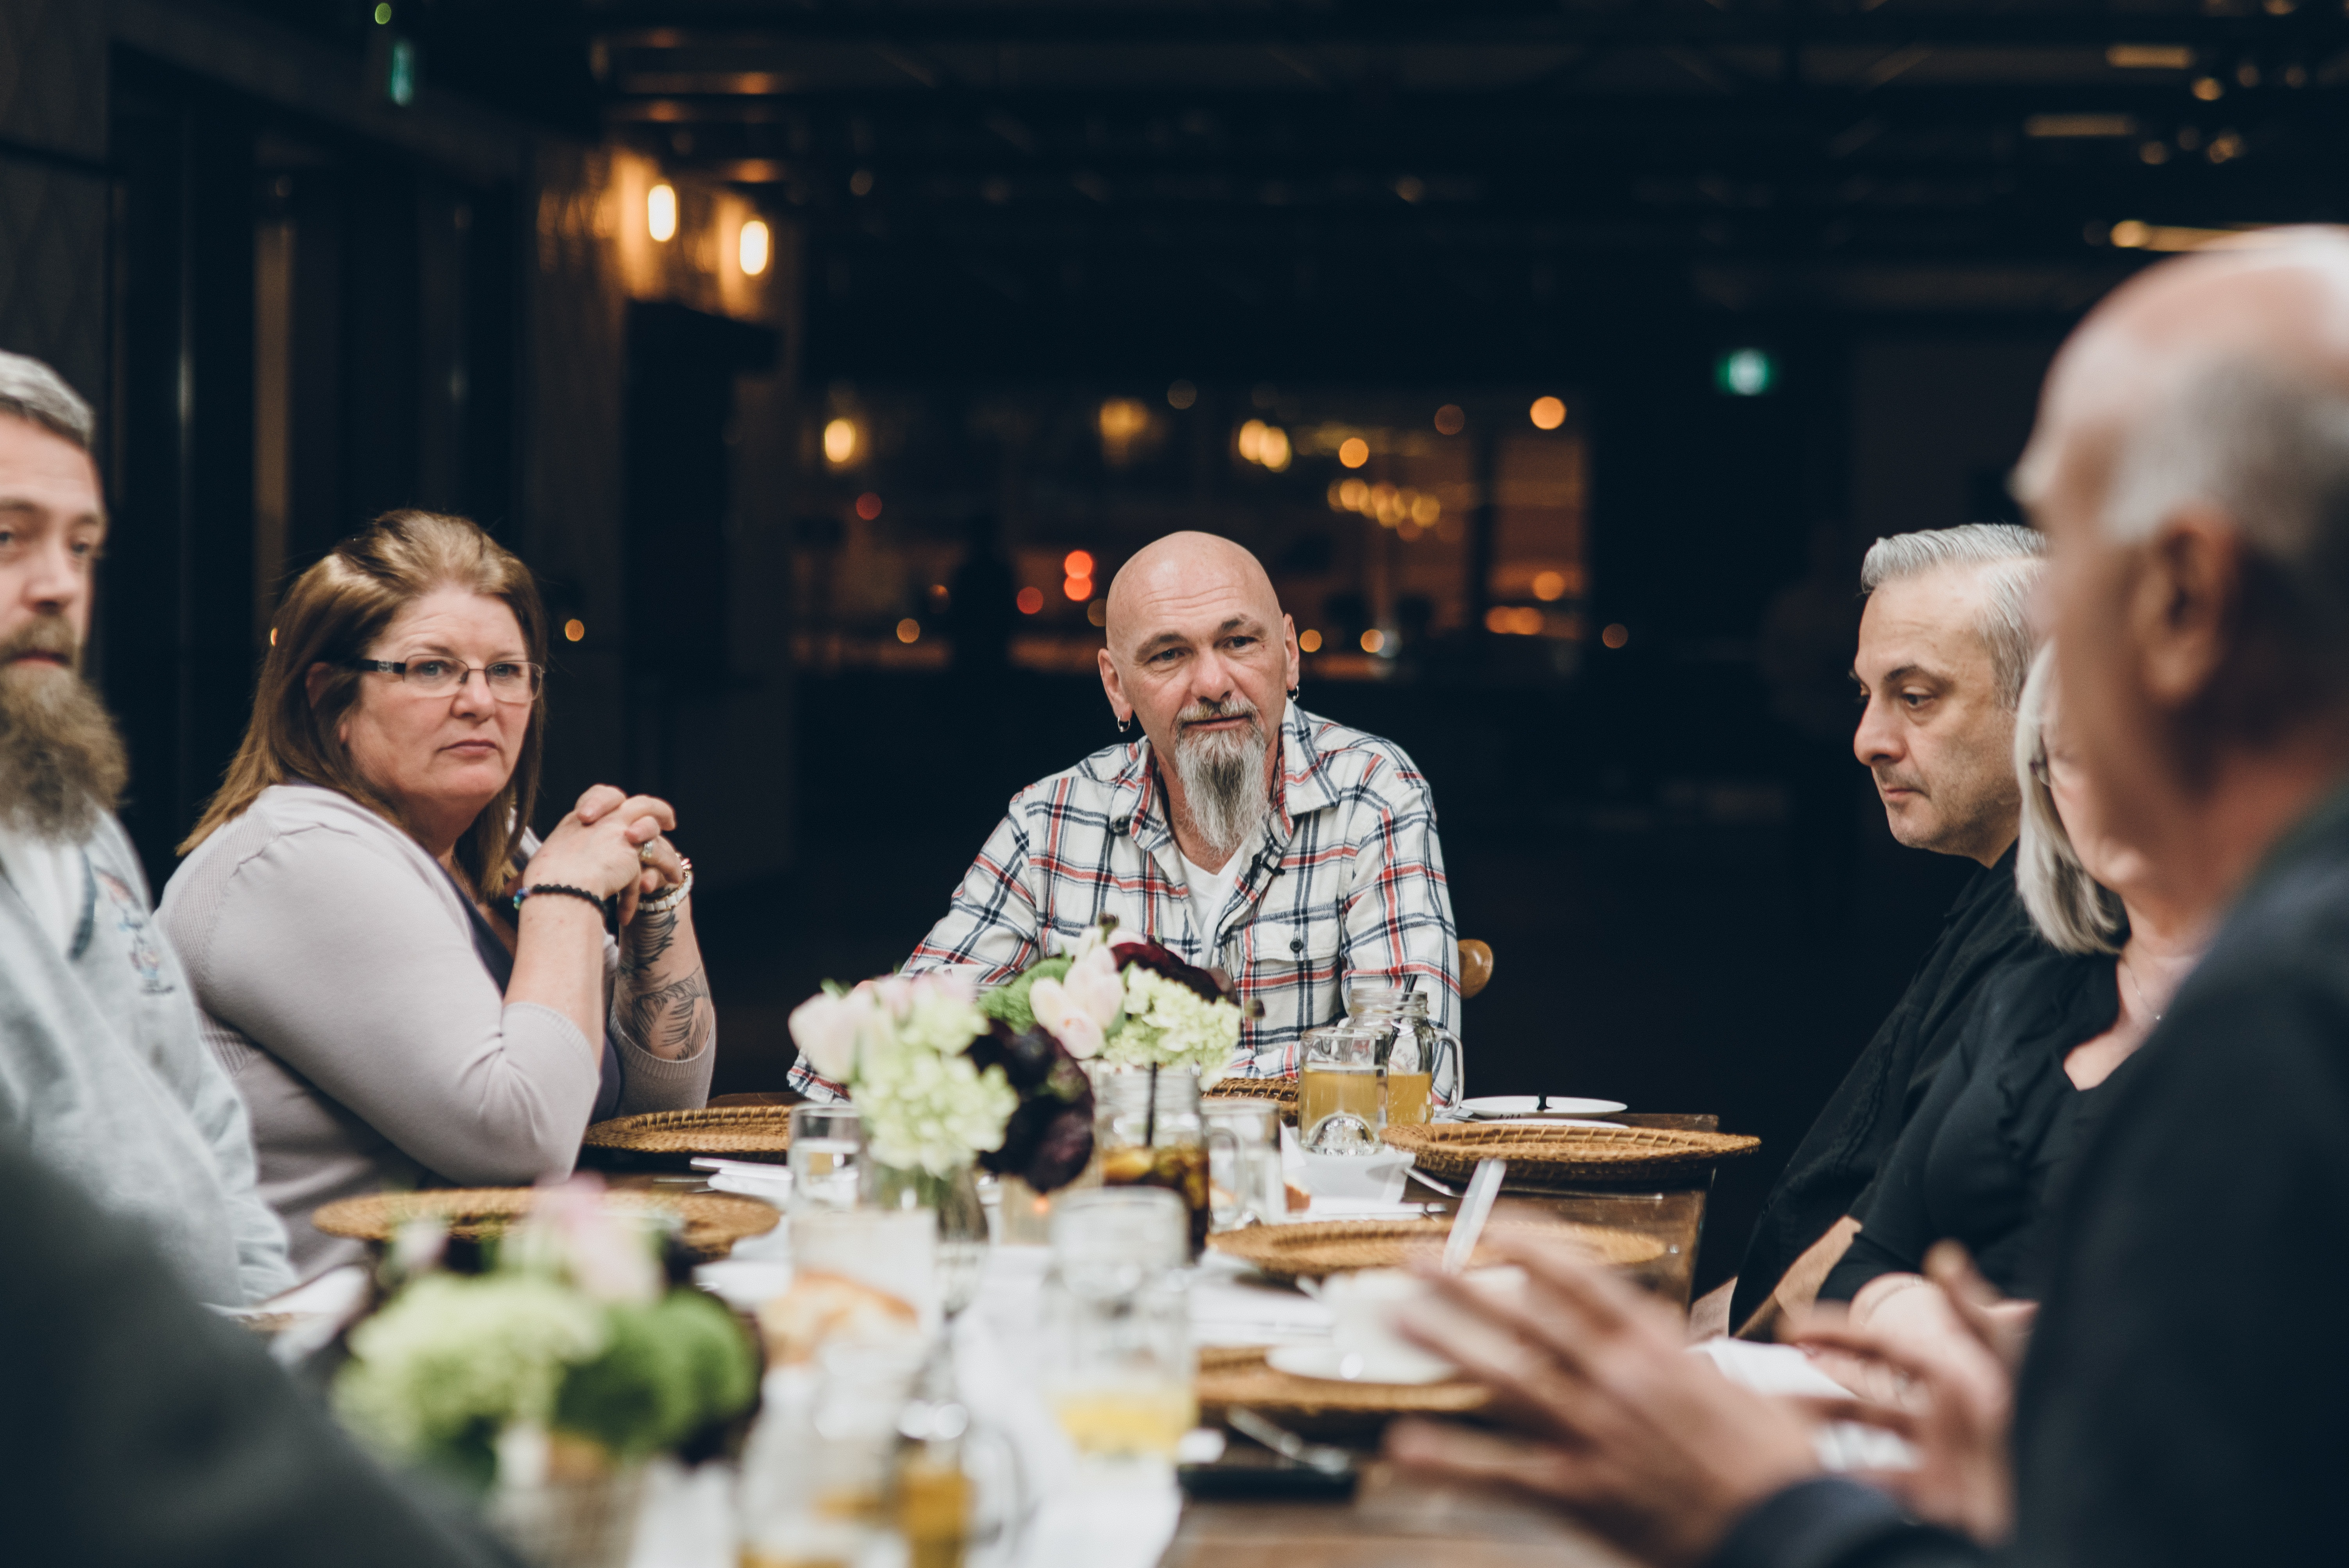 Cannabis, Infused Weed Dinner, Vets, Canadian Vets